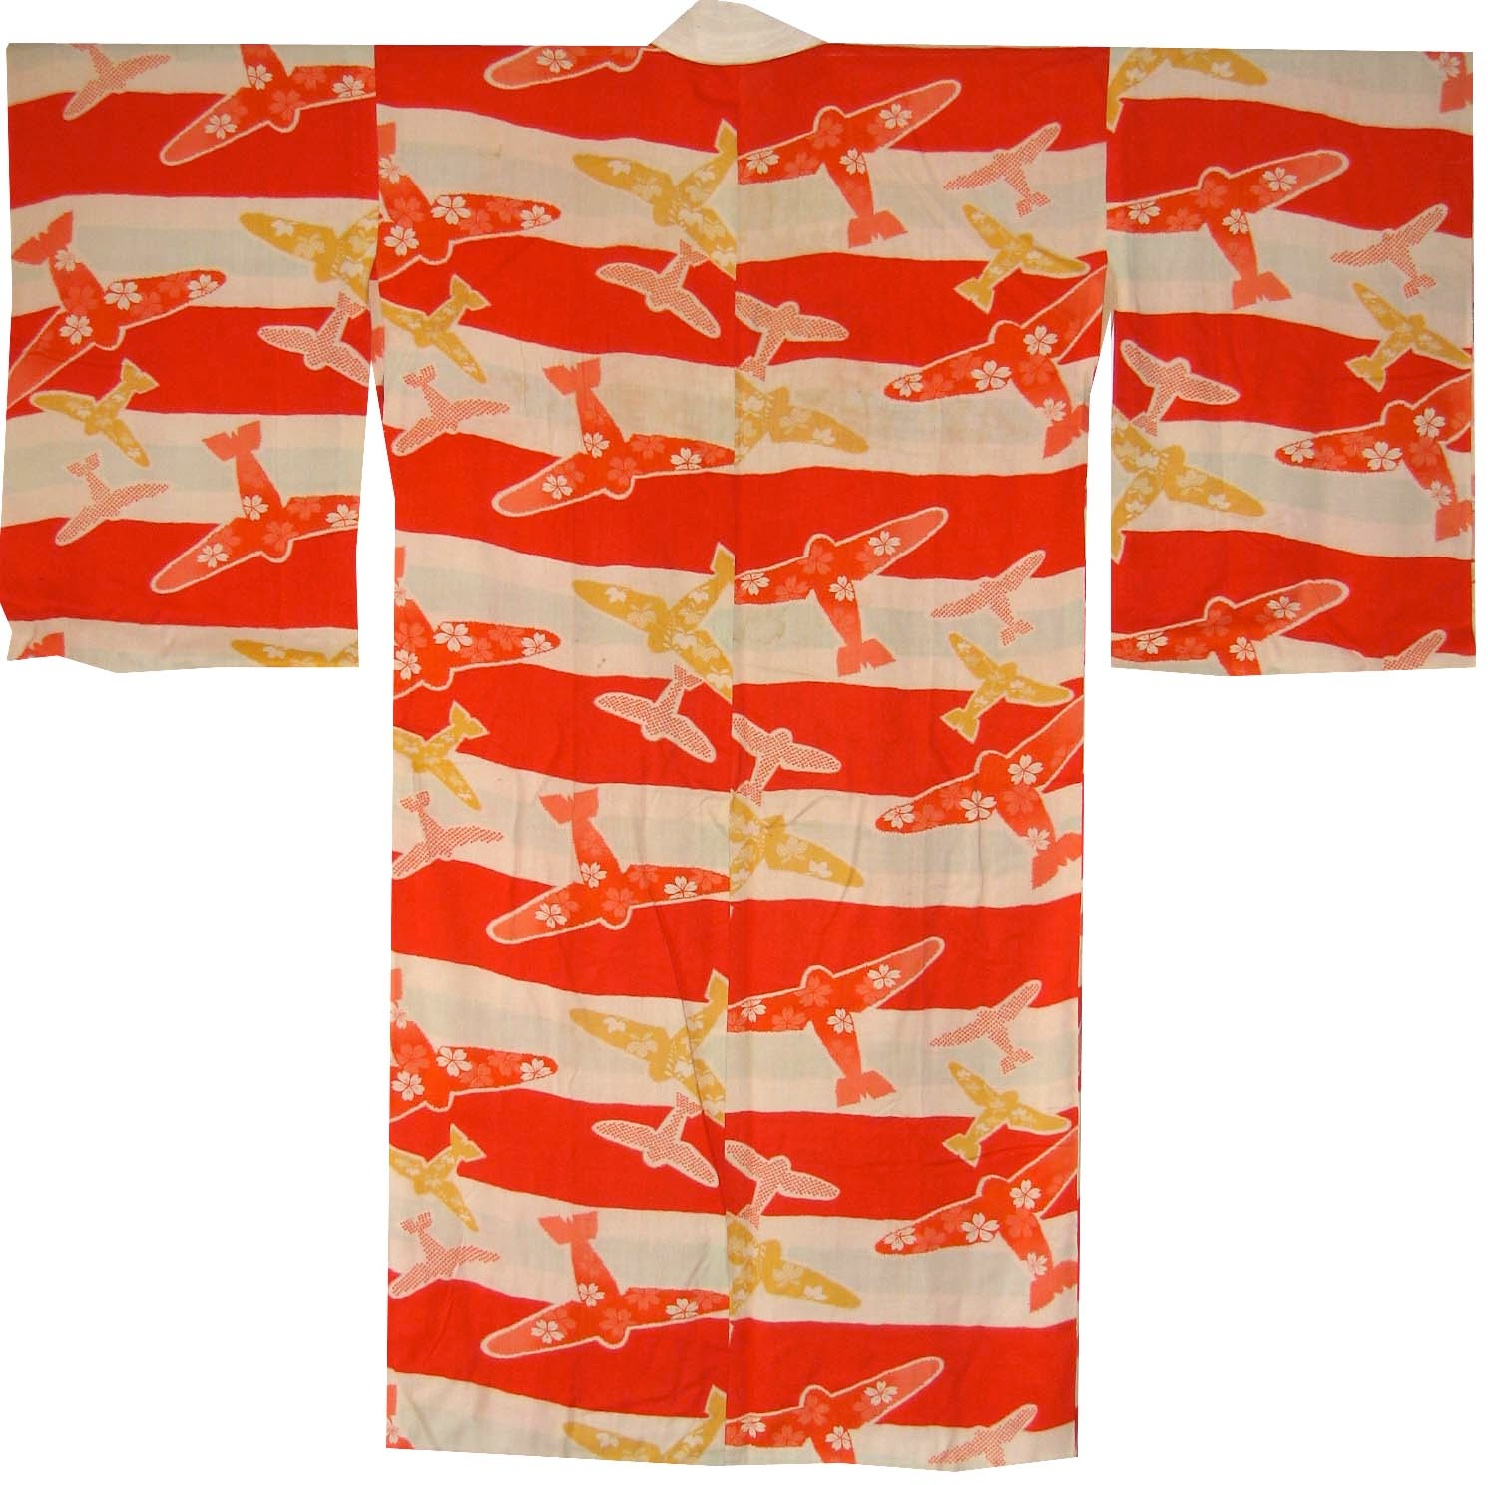 Planes and Cherry Blossoms,  Woman's Kimono, c. 1944, rayon, 45.25h x 47.25w in.